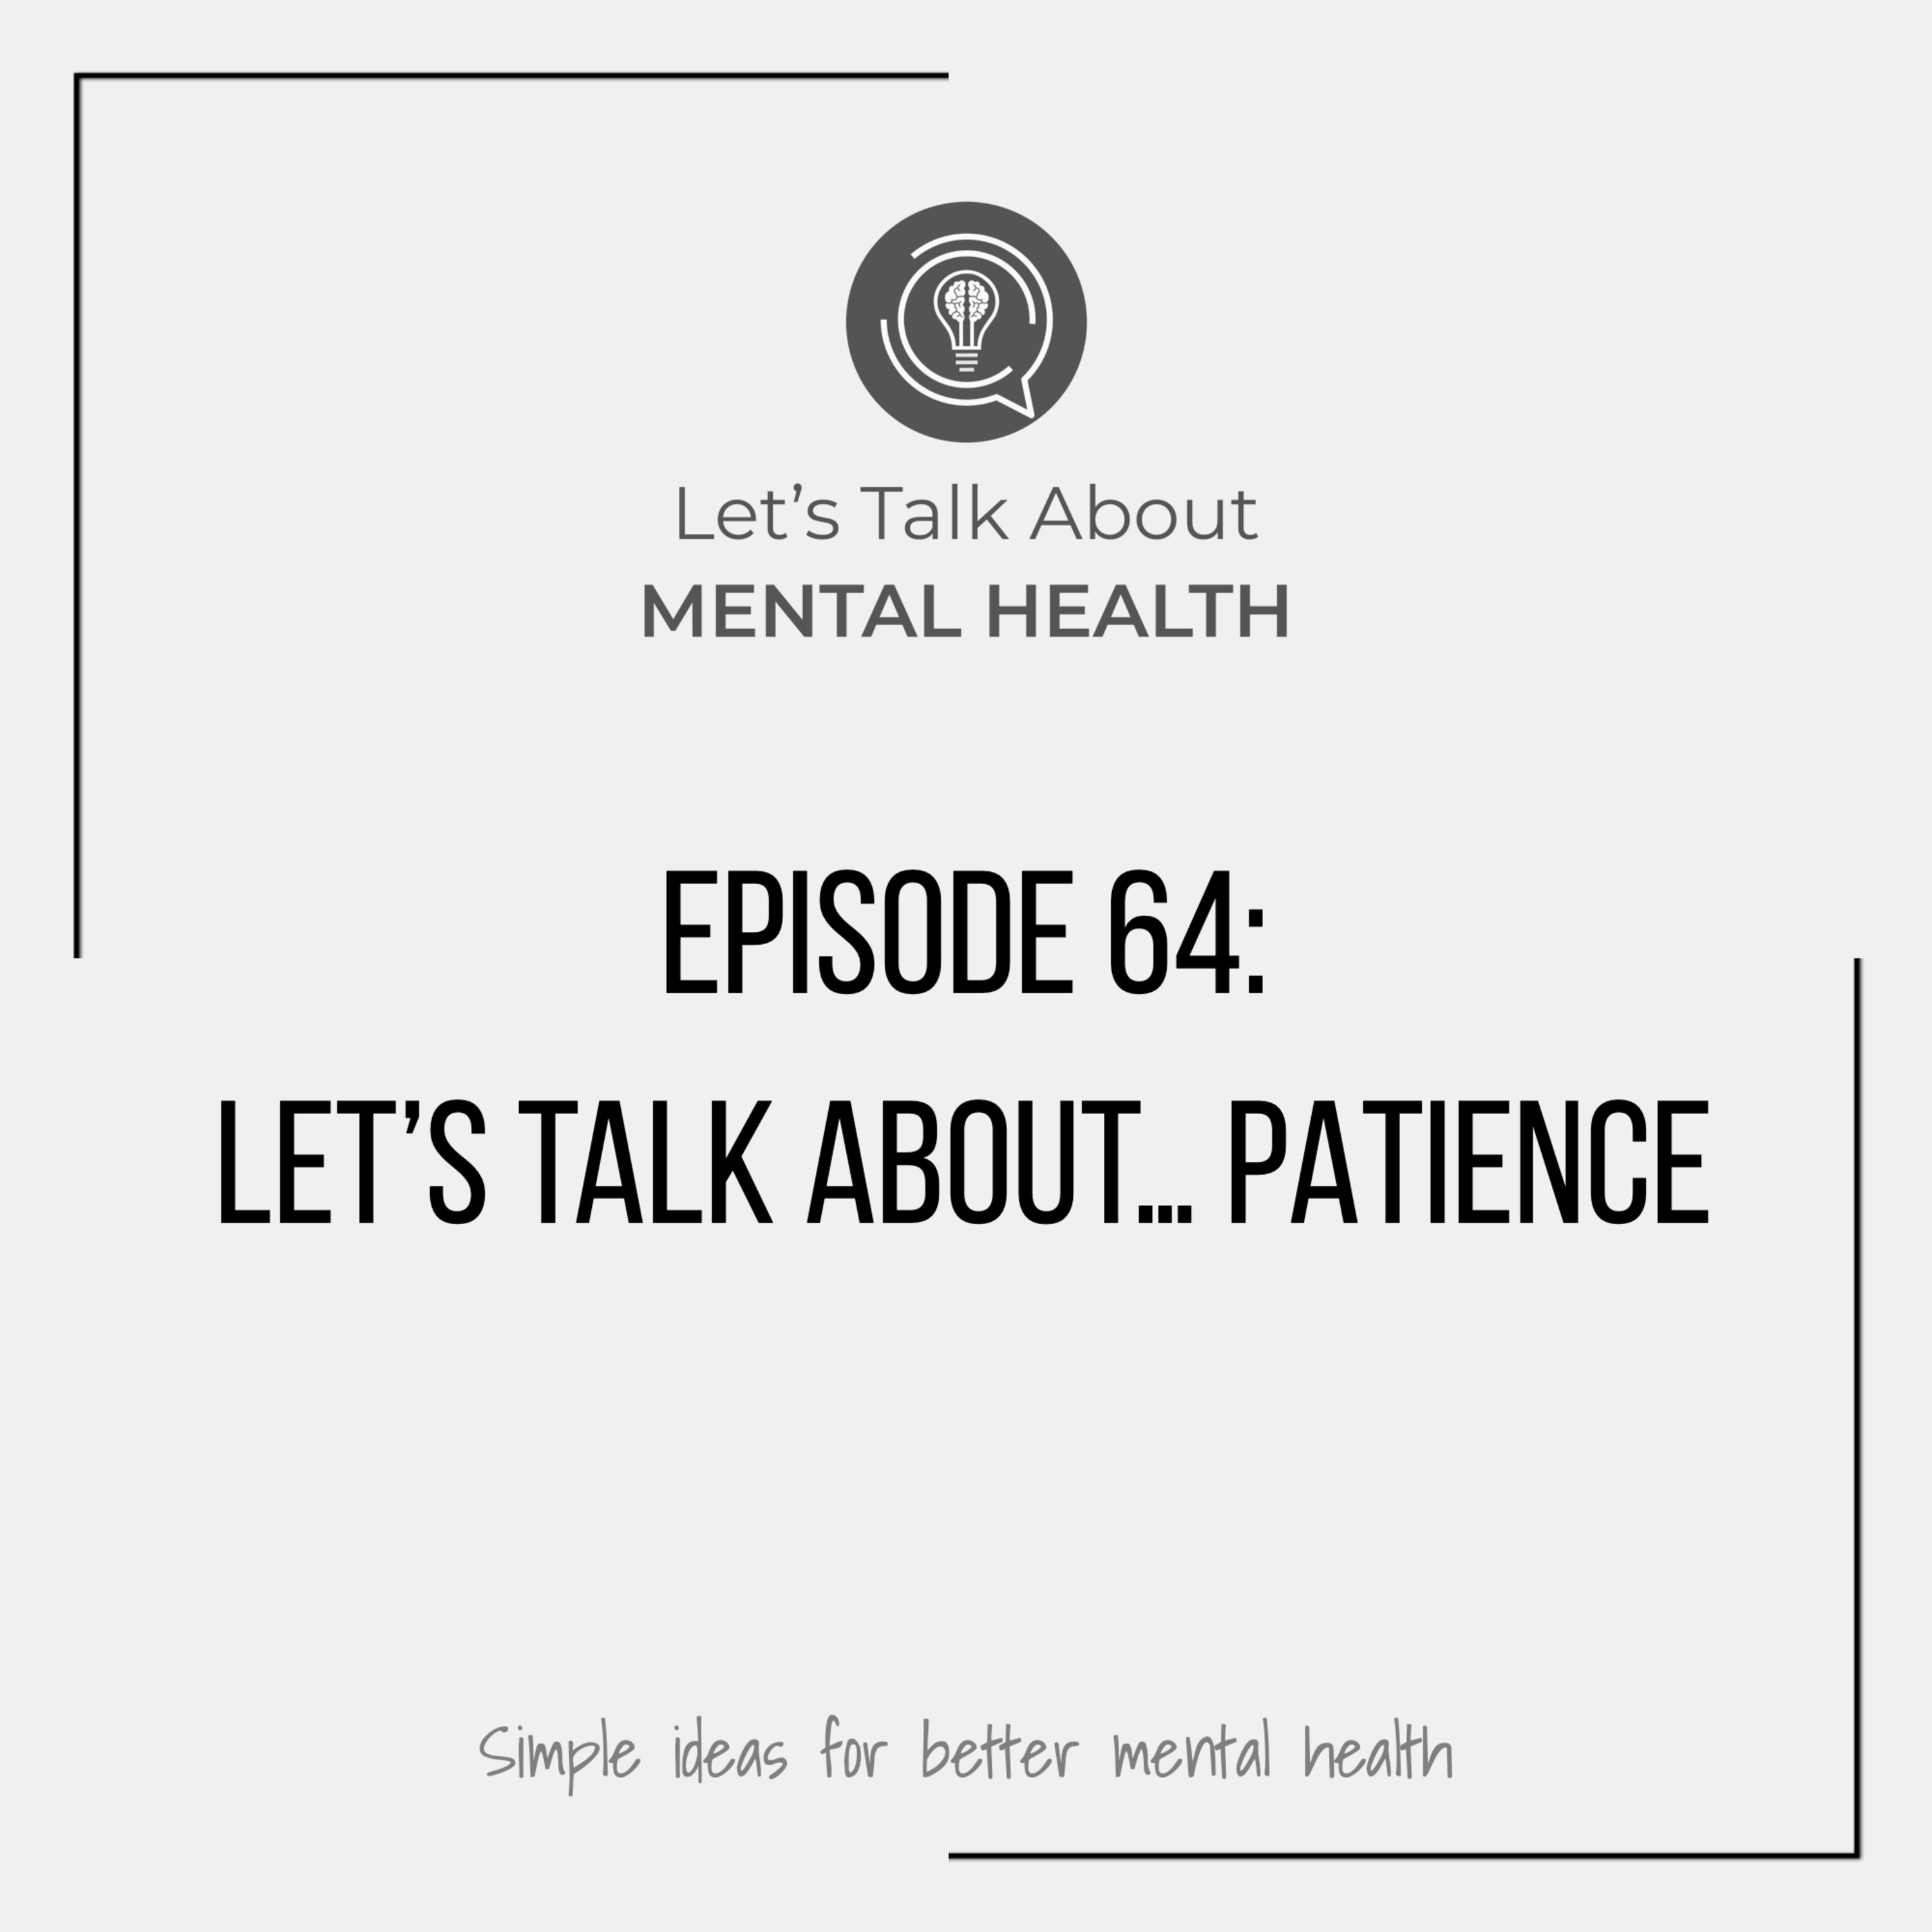 Let's Talk About Mental Health - Let's Talk About... Patience